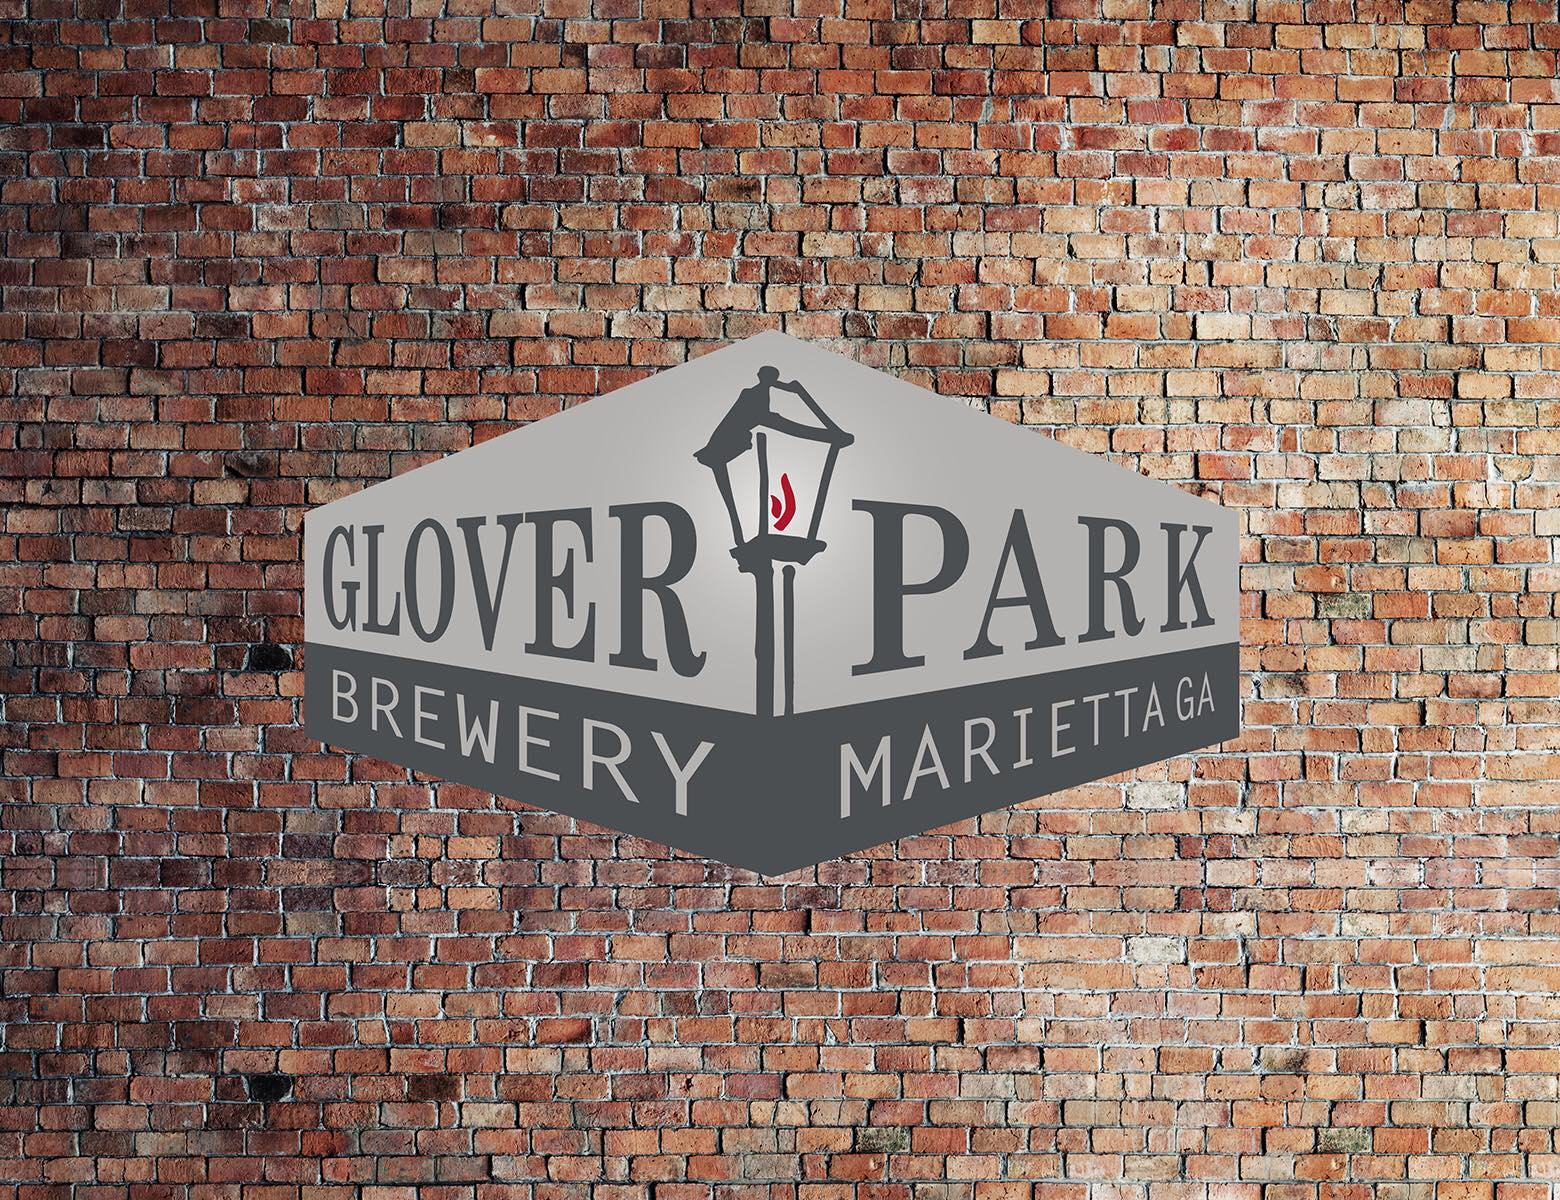 Independence Day at Glover Park Brewery